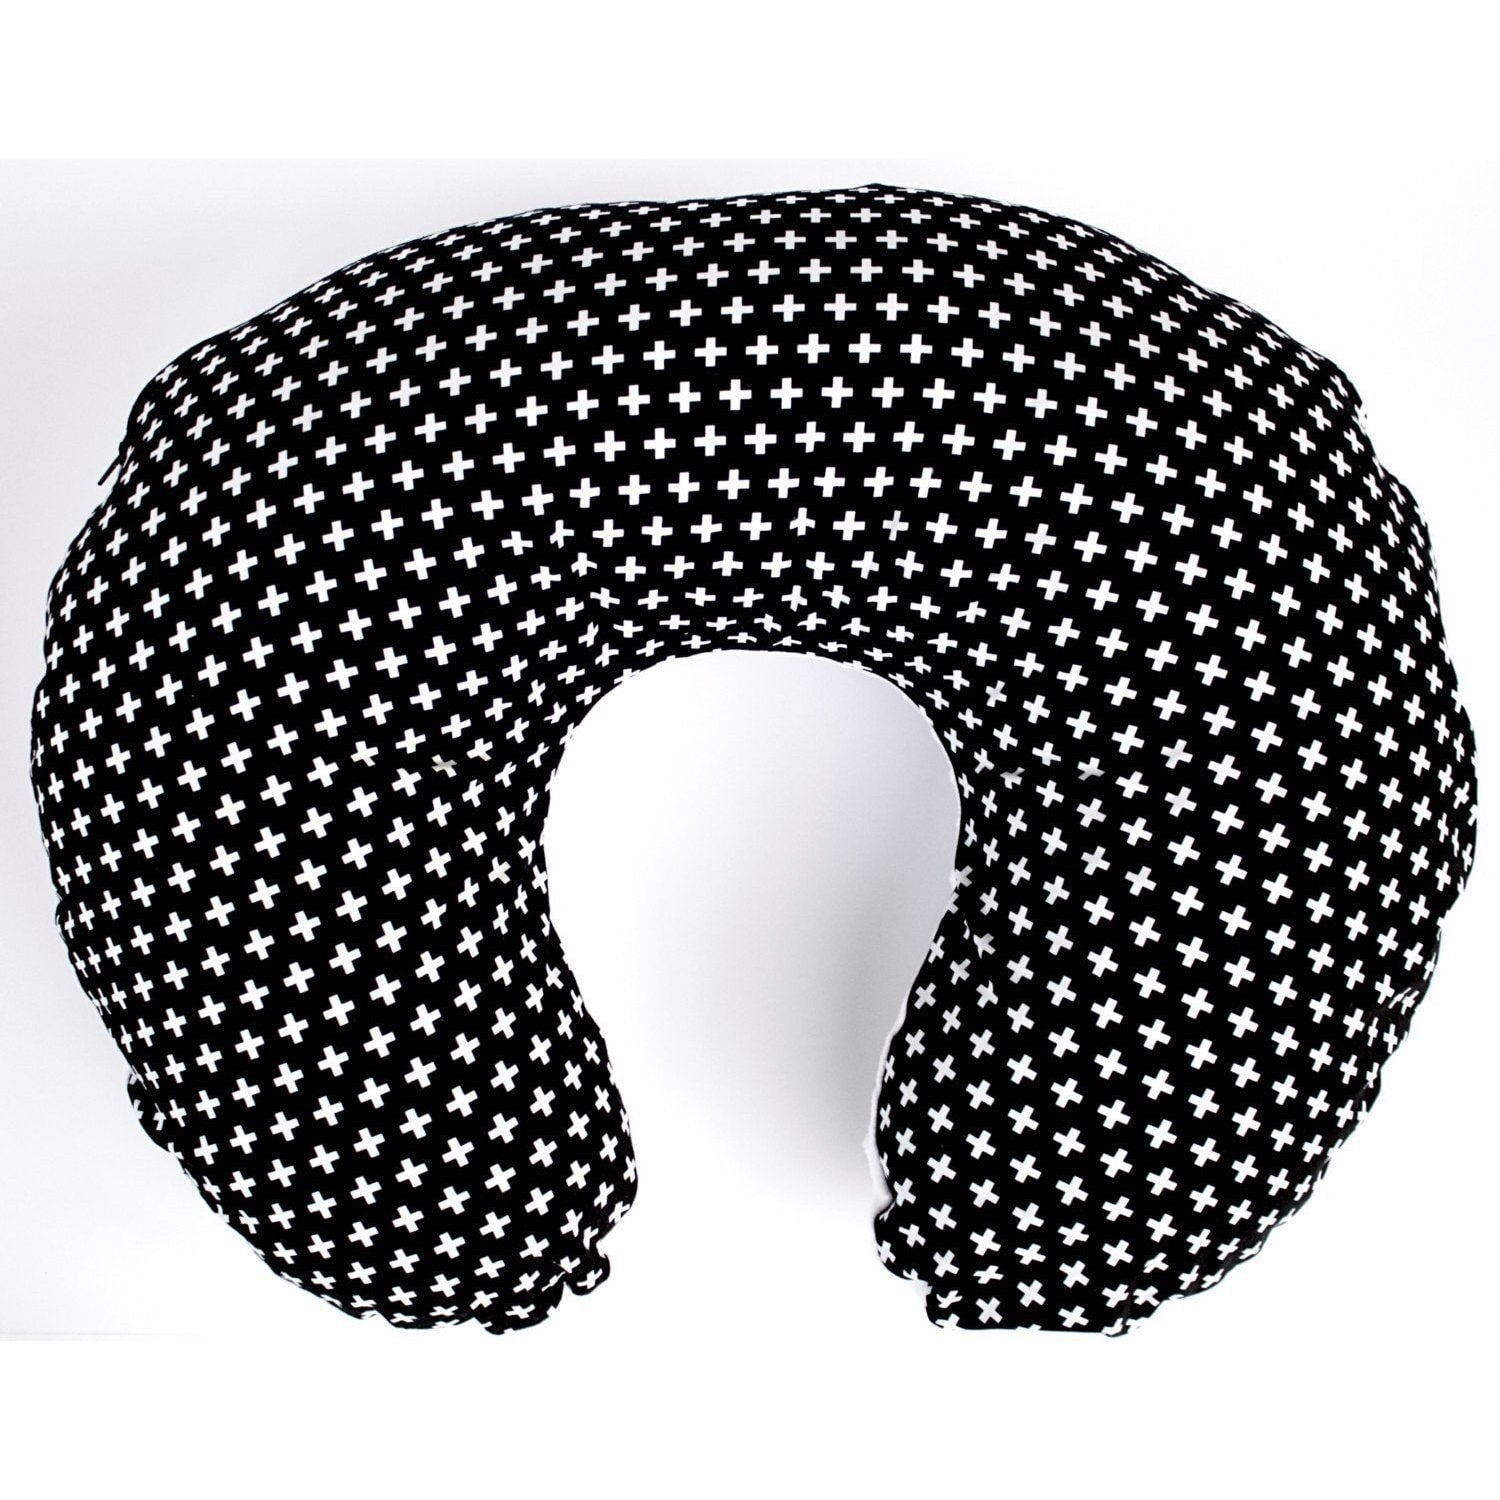 Boppy Covers | Black & White Swiss Cross Crib Baby Bedding-Boppy Cover-Default-Jack and Jill Boutique